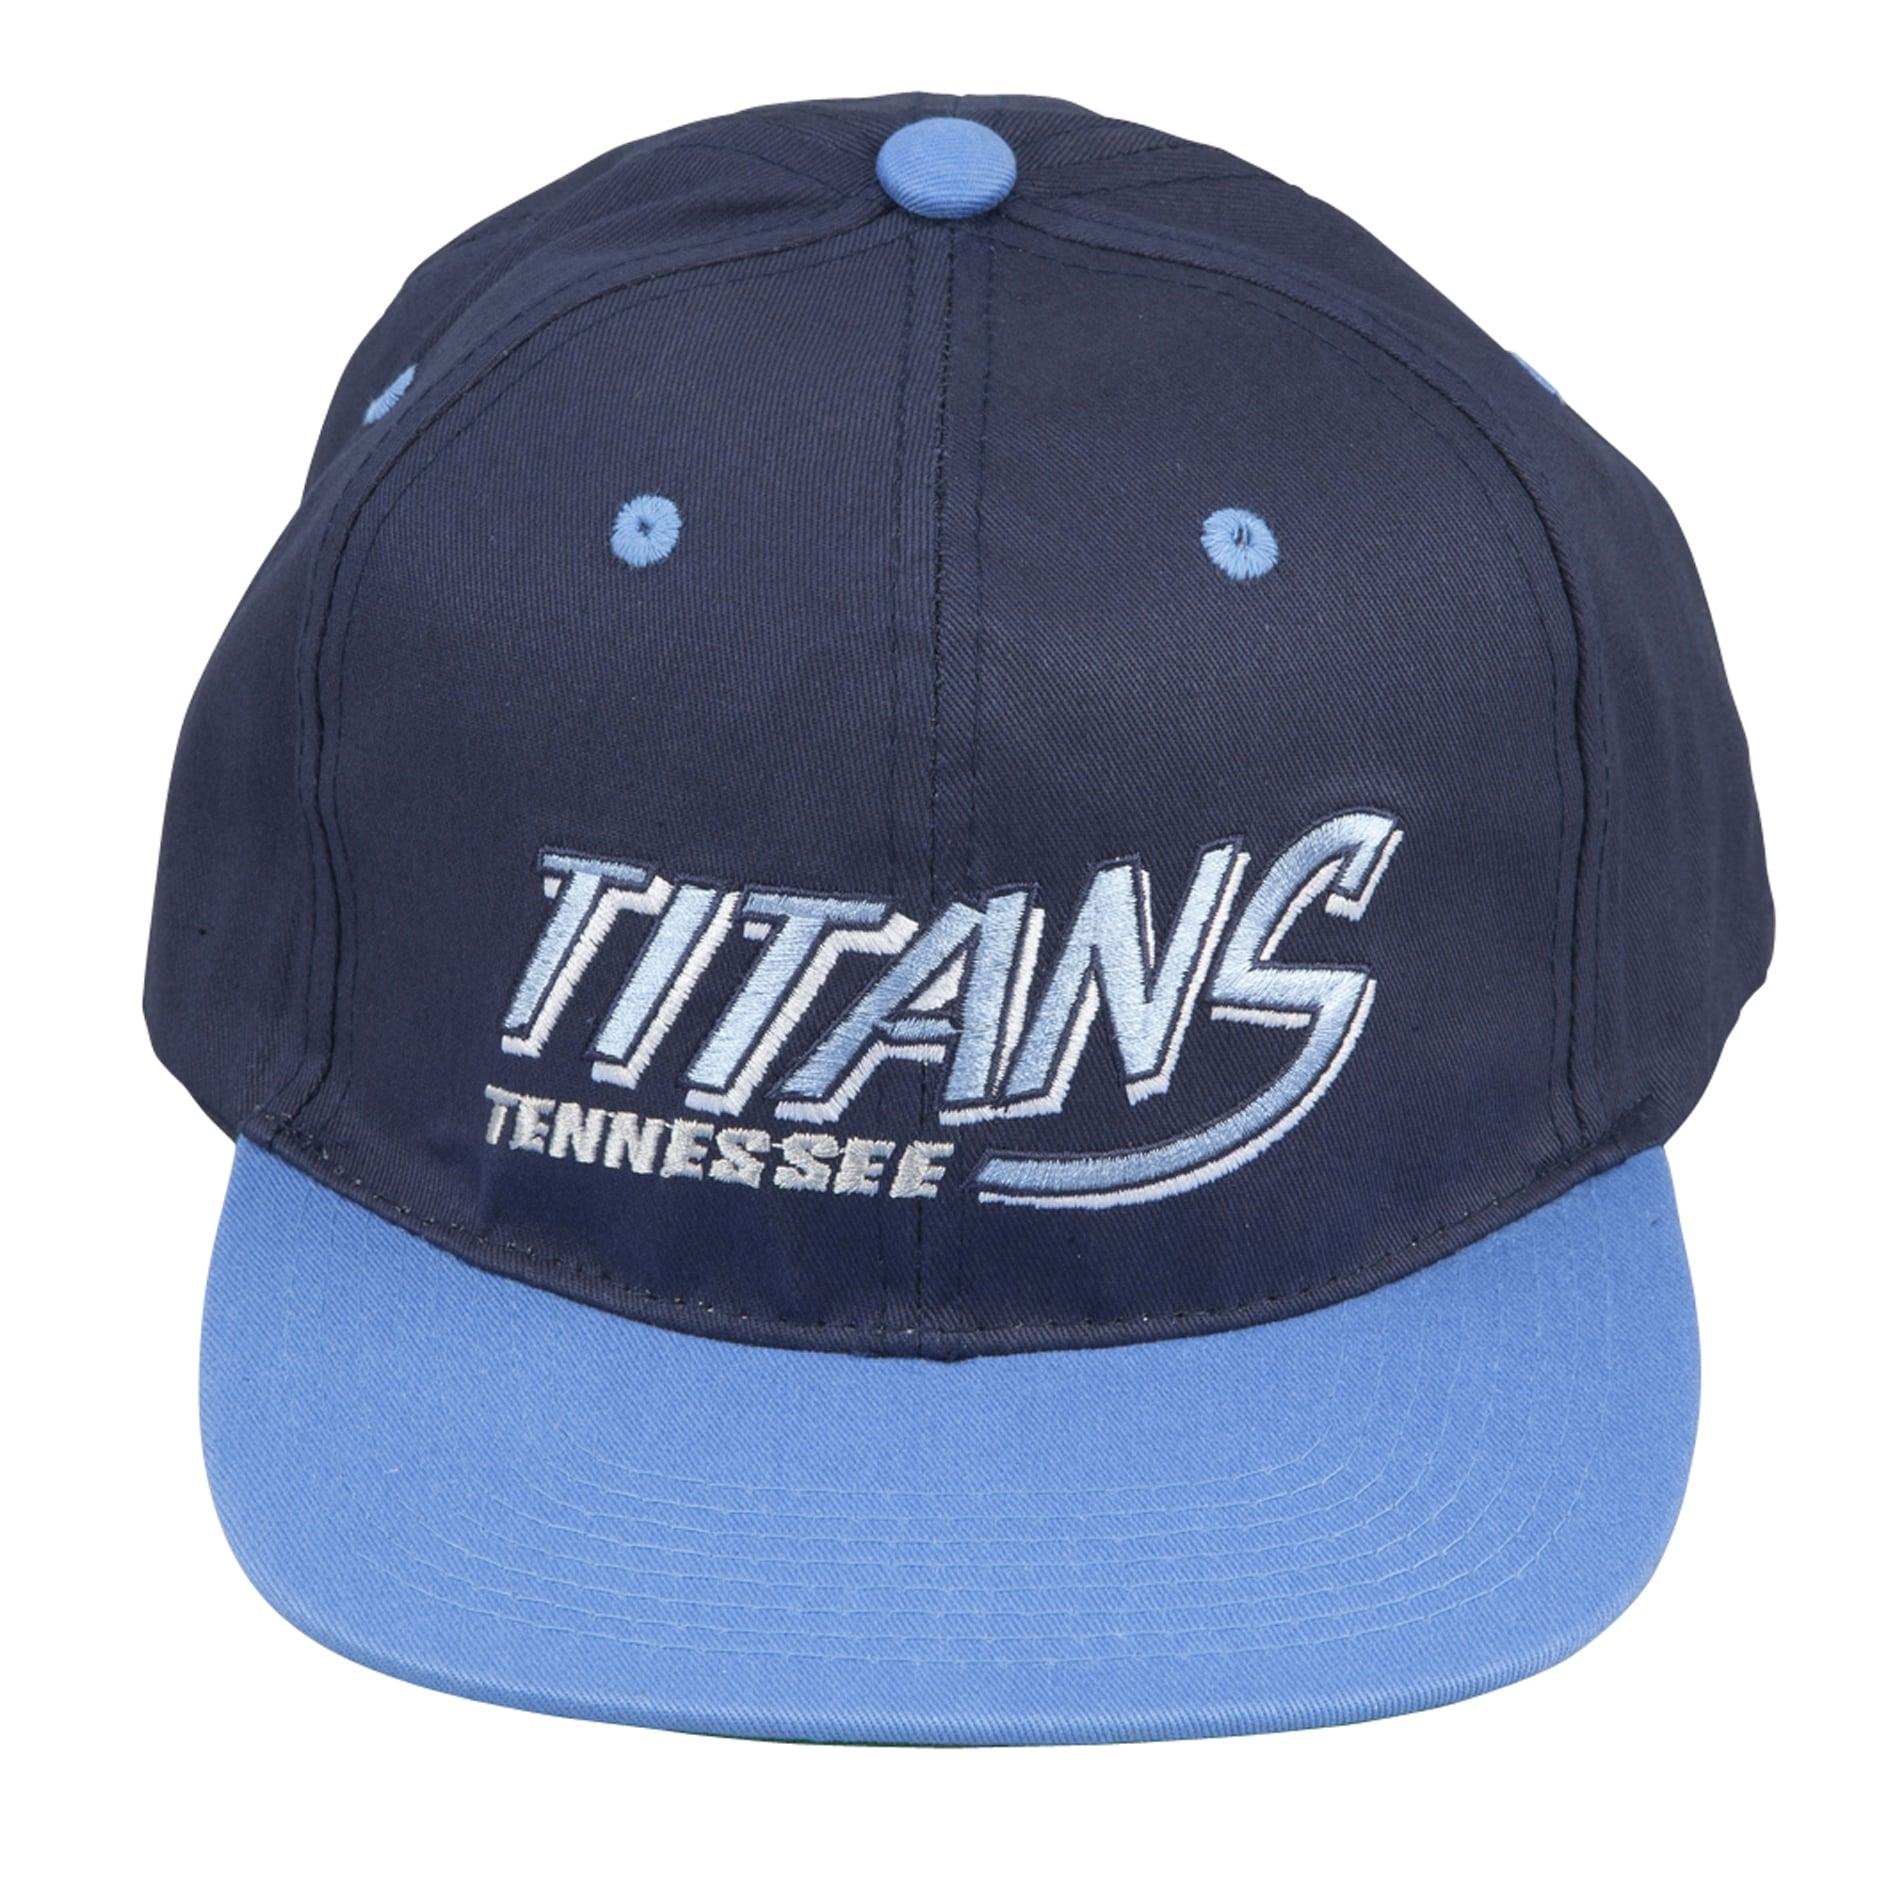 Tennessee Titans Retro NFL Snapback Hat